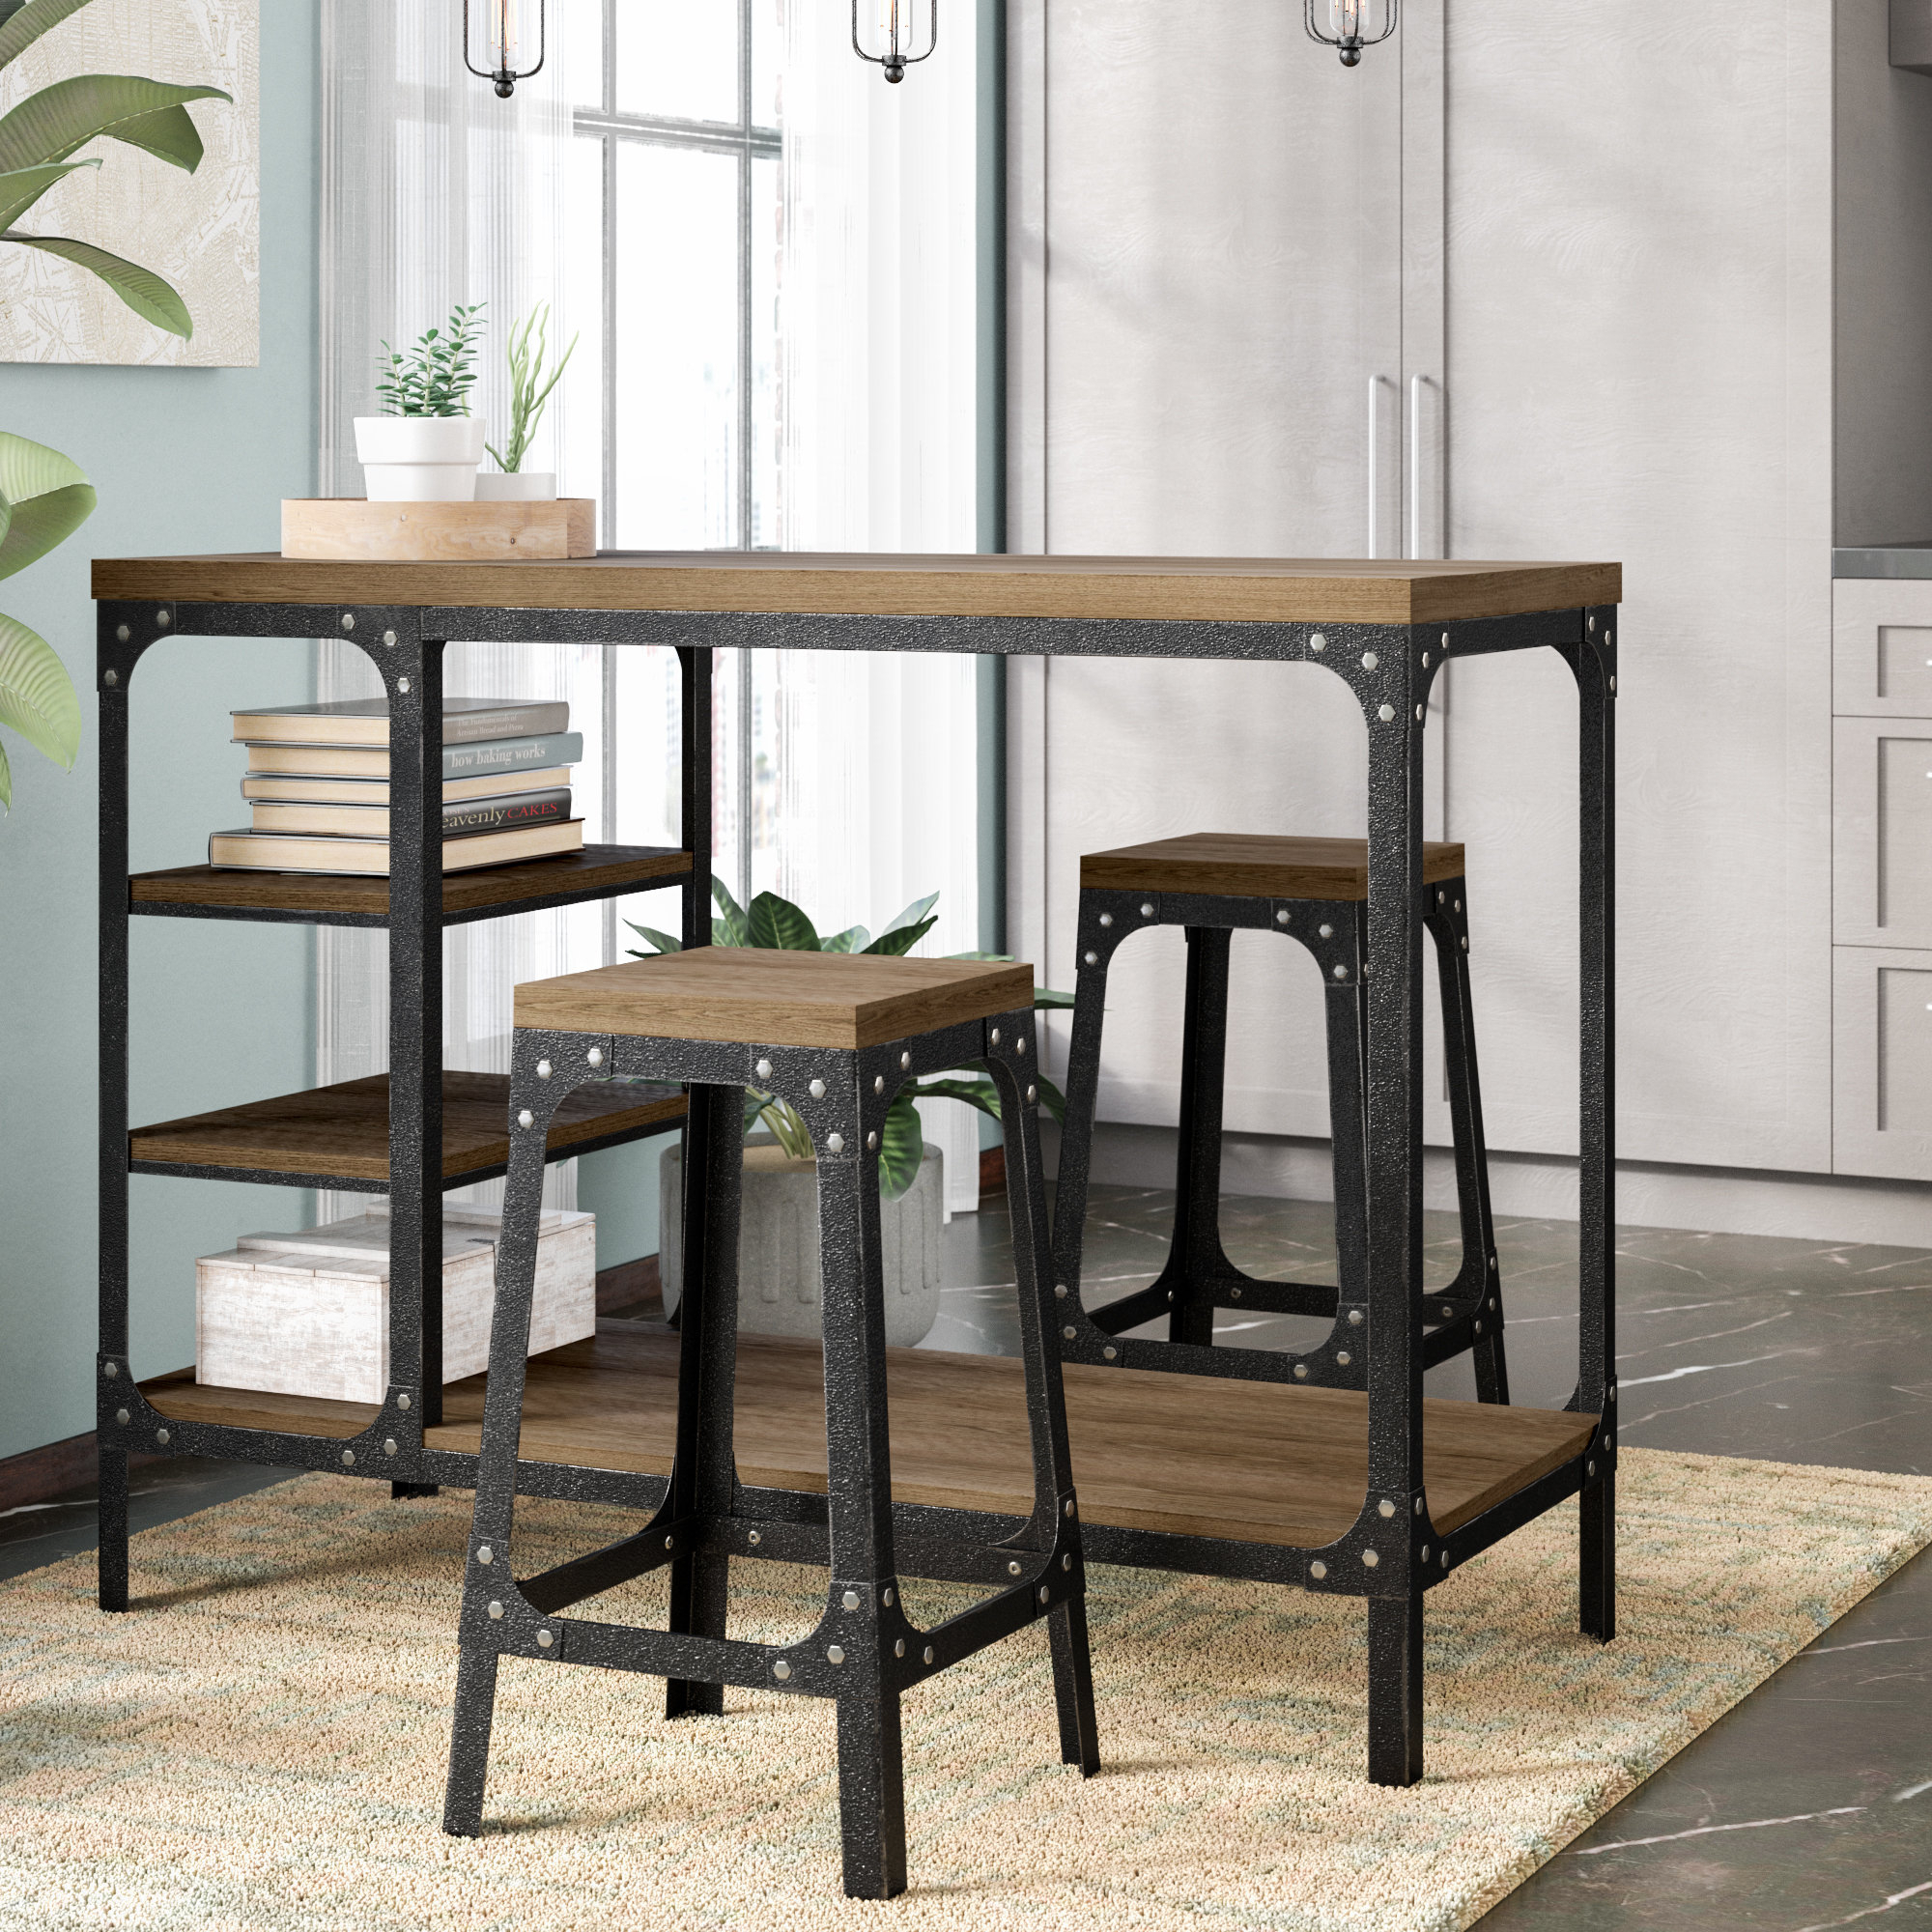 Williston Forge Terence 3 Piece Breakfast Nook Dining Set With Regard To Most Recent Wallflower 3 Piece Dining Sets (Image 19 of 20)